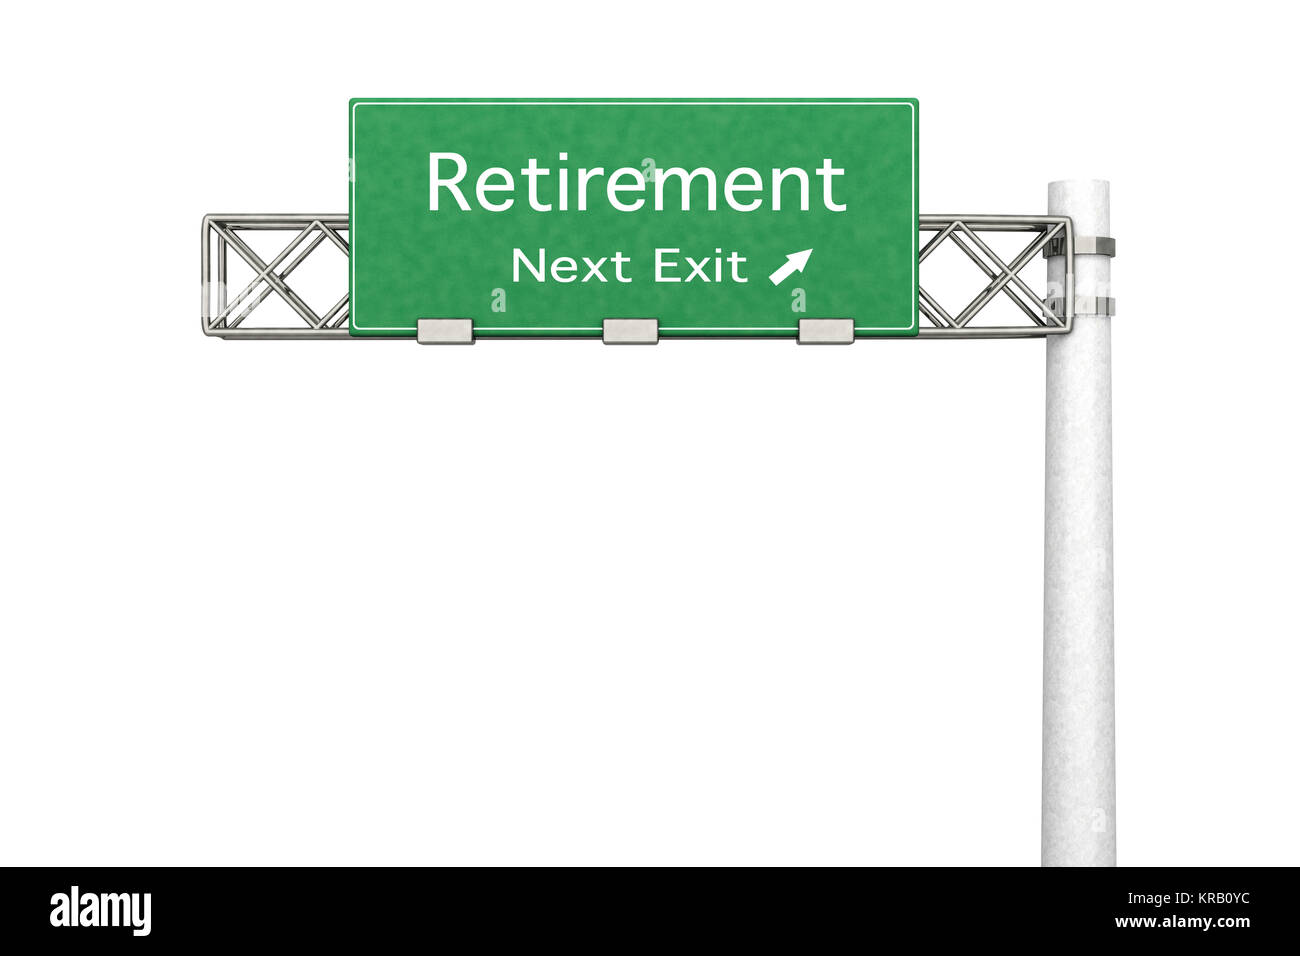 3D rendered Illustration. Highway Sign next exit to Retirement. - Stock Image